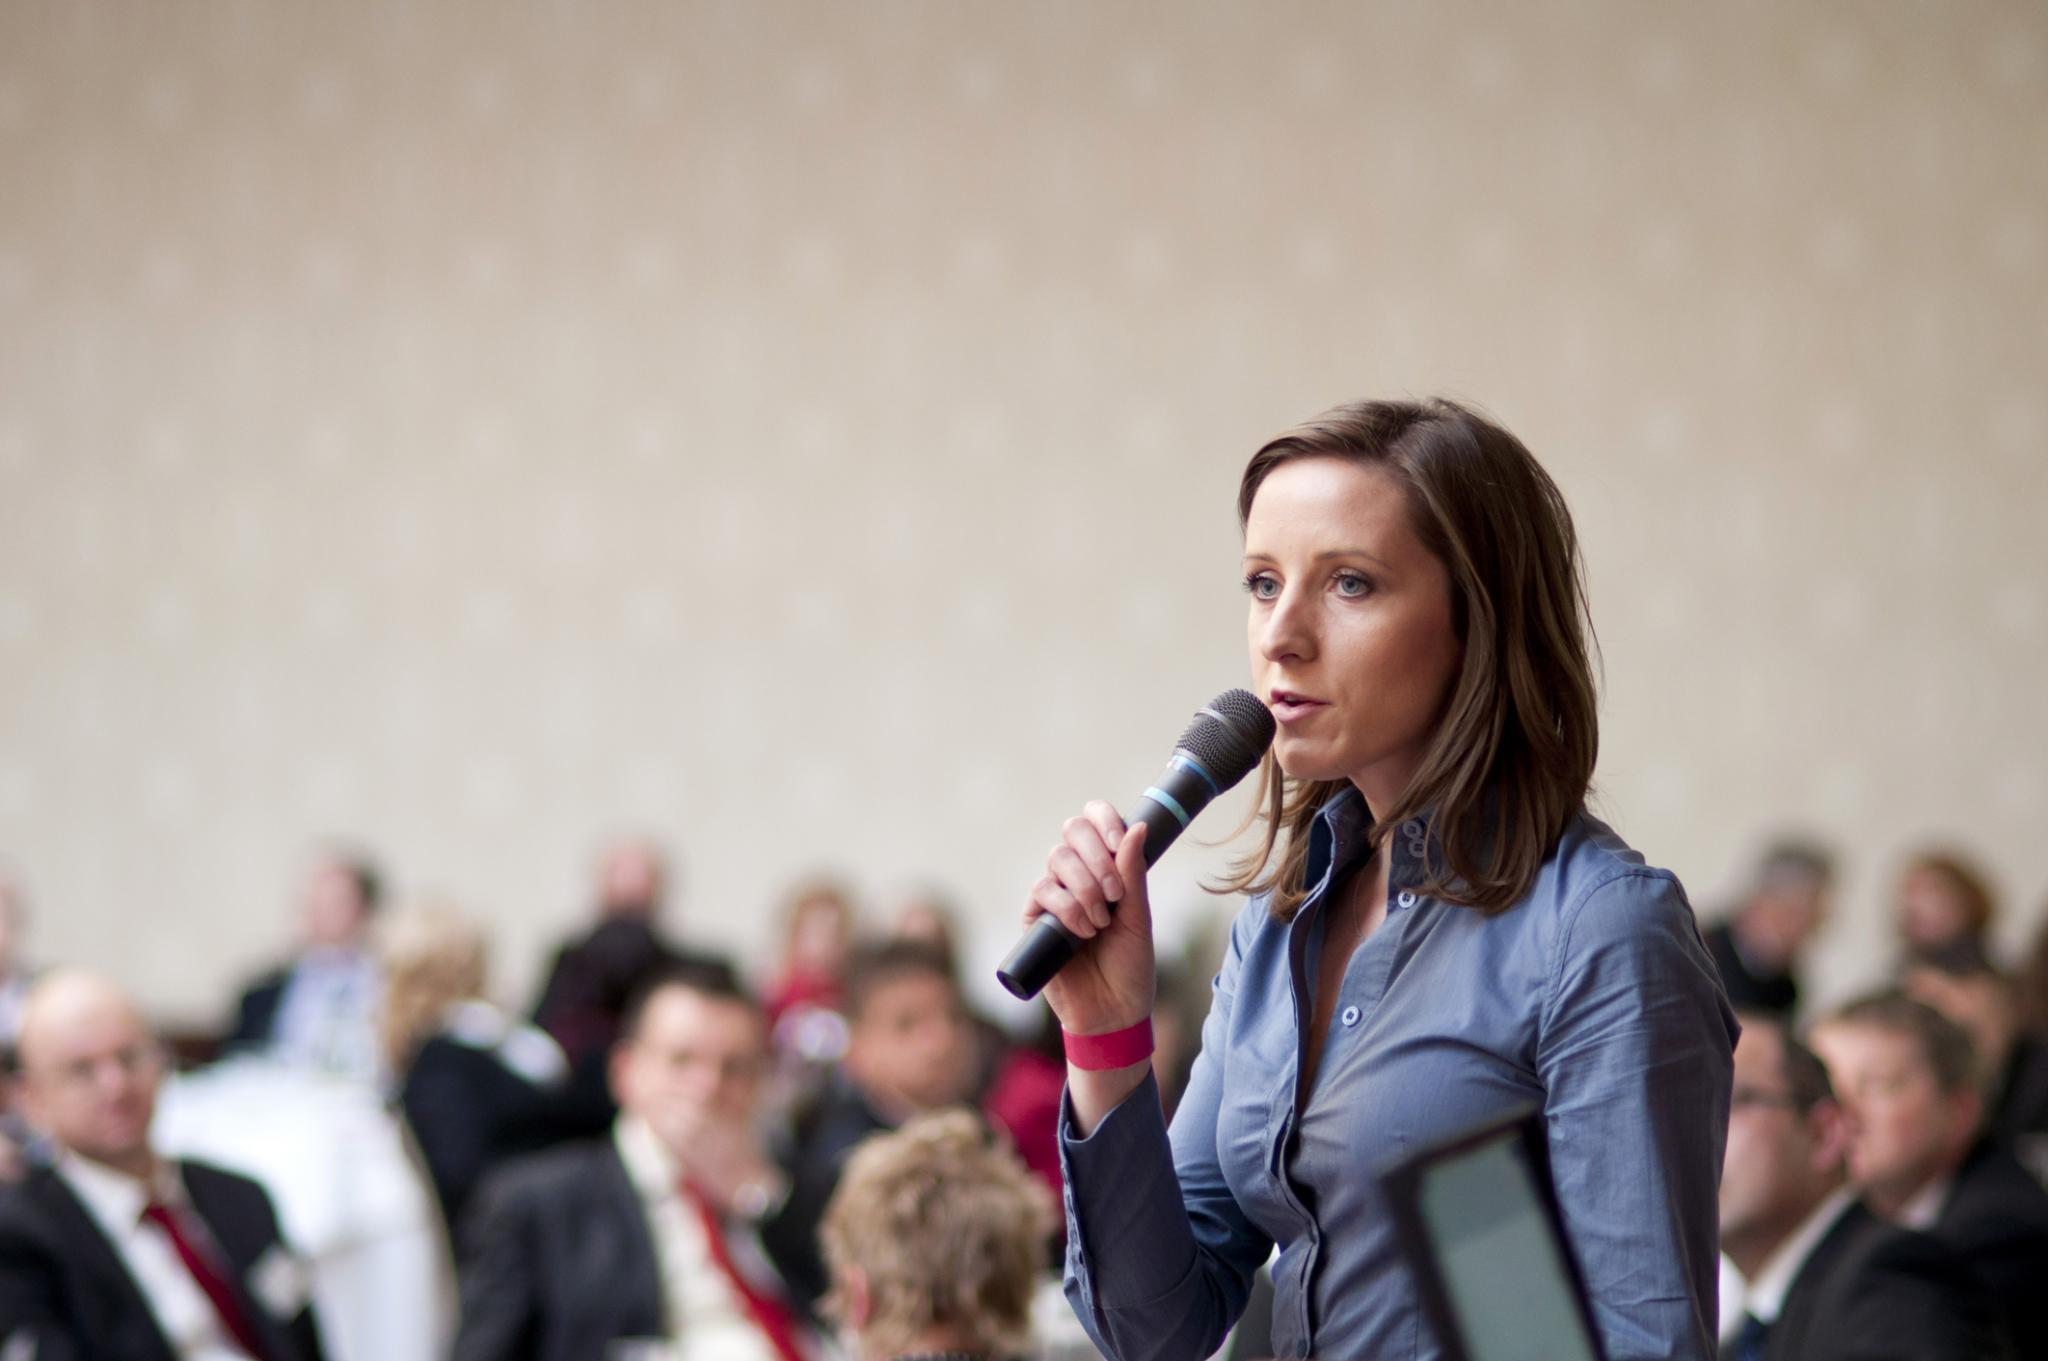 lady holding a microphone